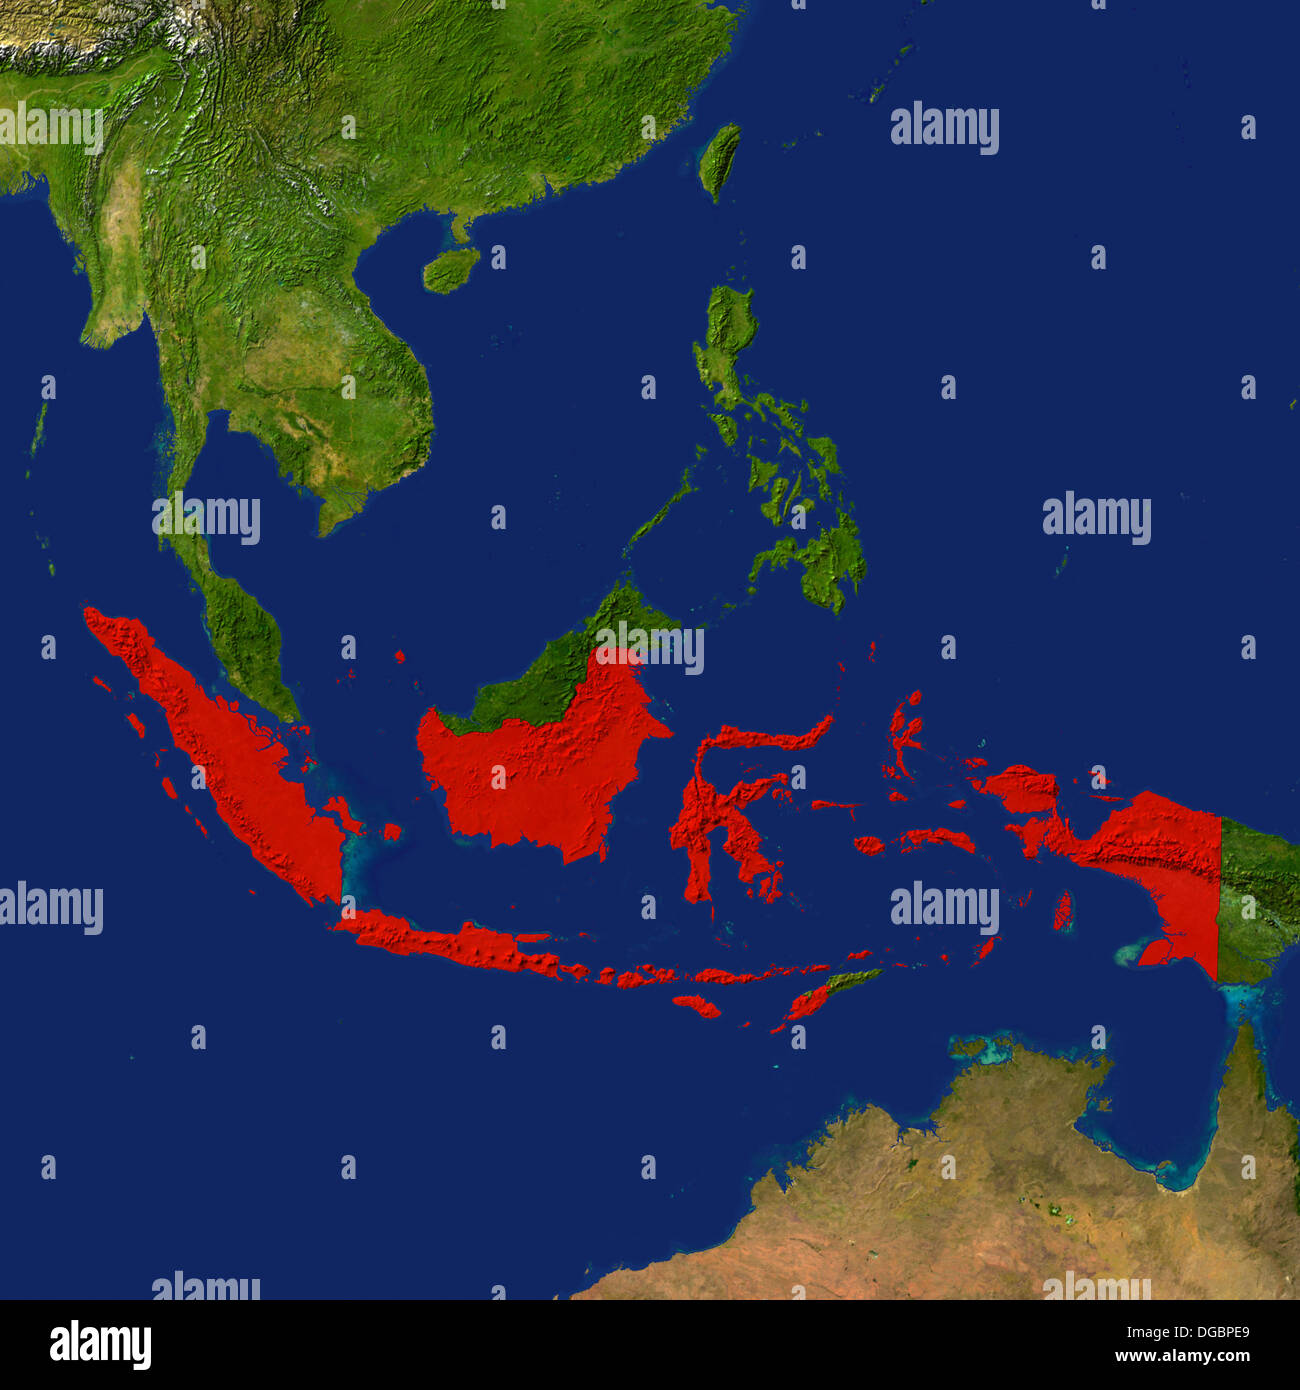 Highlighted satellite image of indonesia stock photo 61724721 alamy highlighted satellite image of indonesia gumiabroncs Choice Image